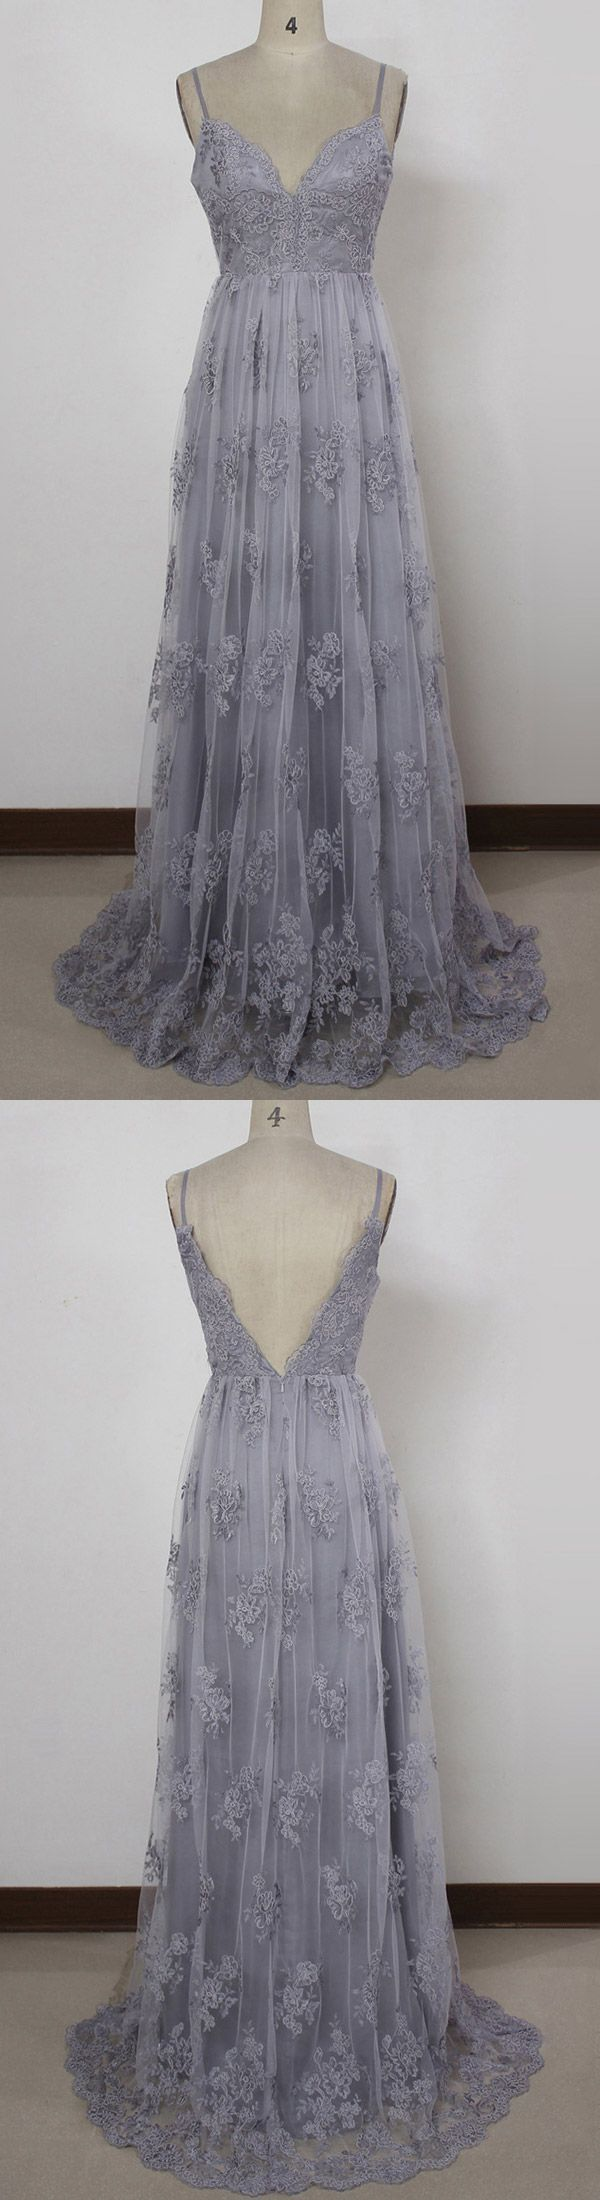 Grey prom dresses long lace party dresses aline sexy evening